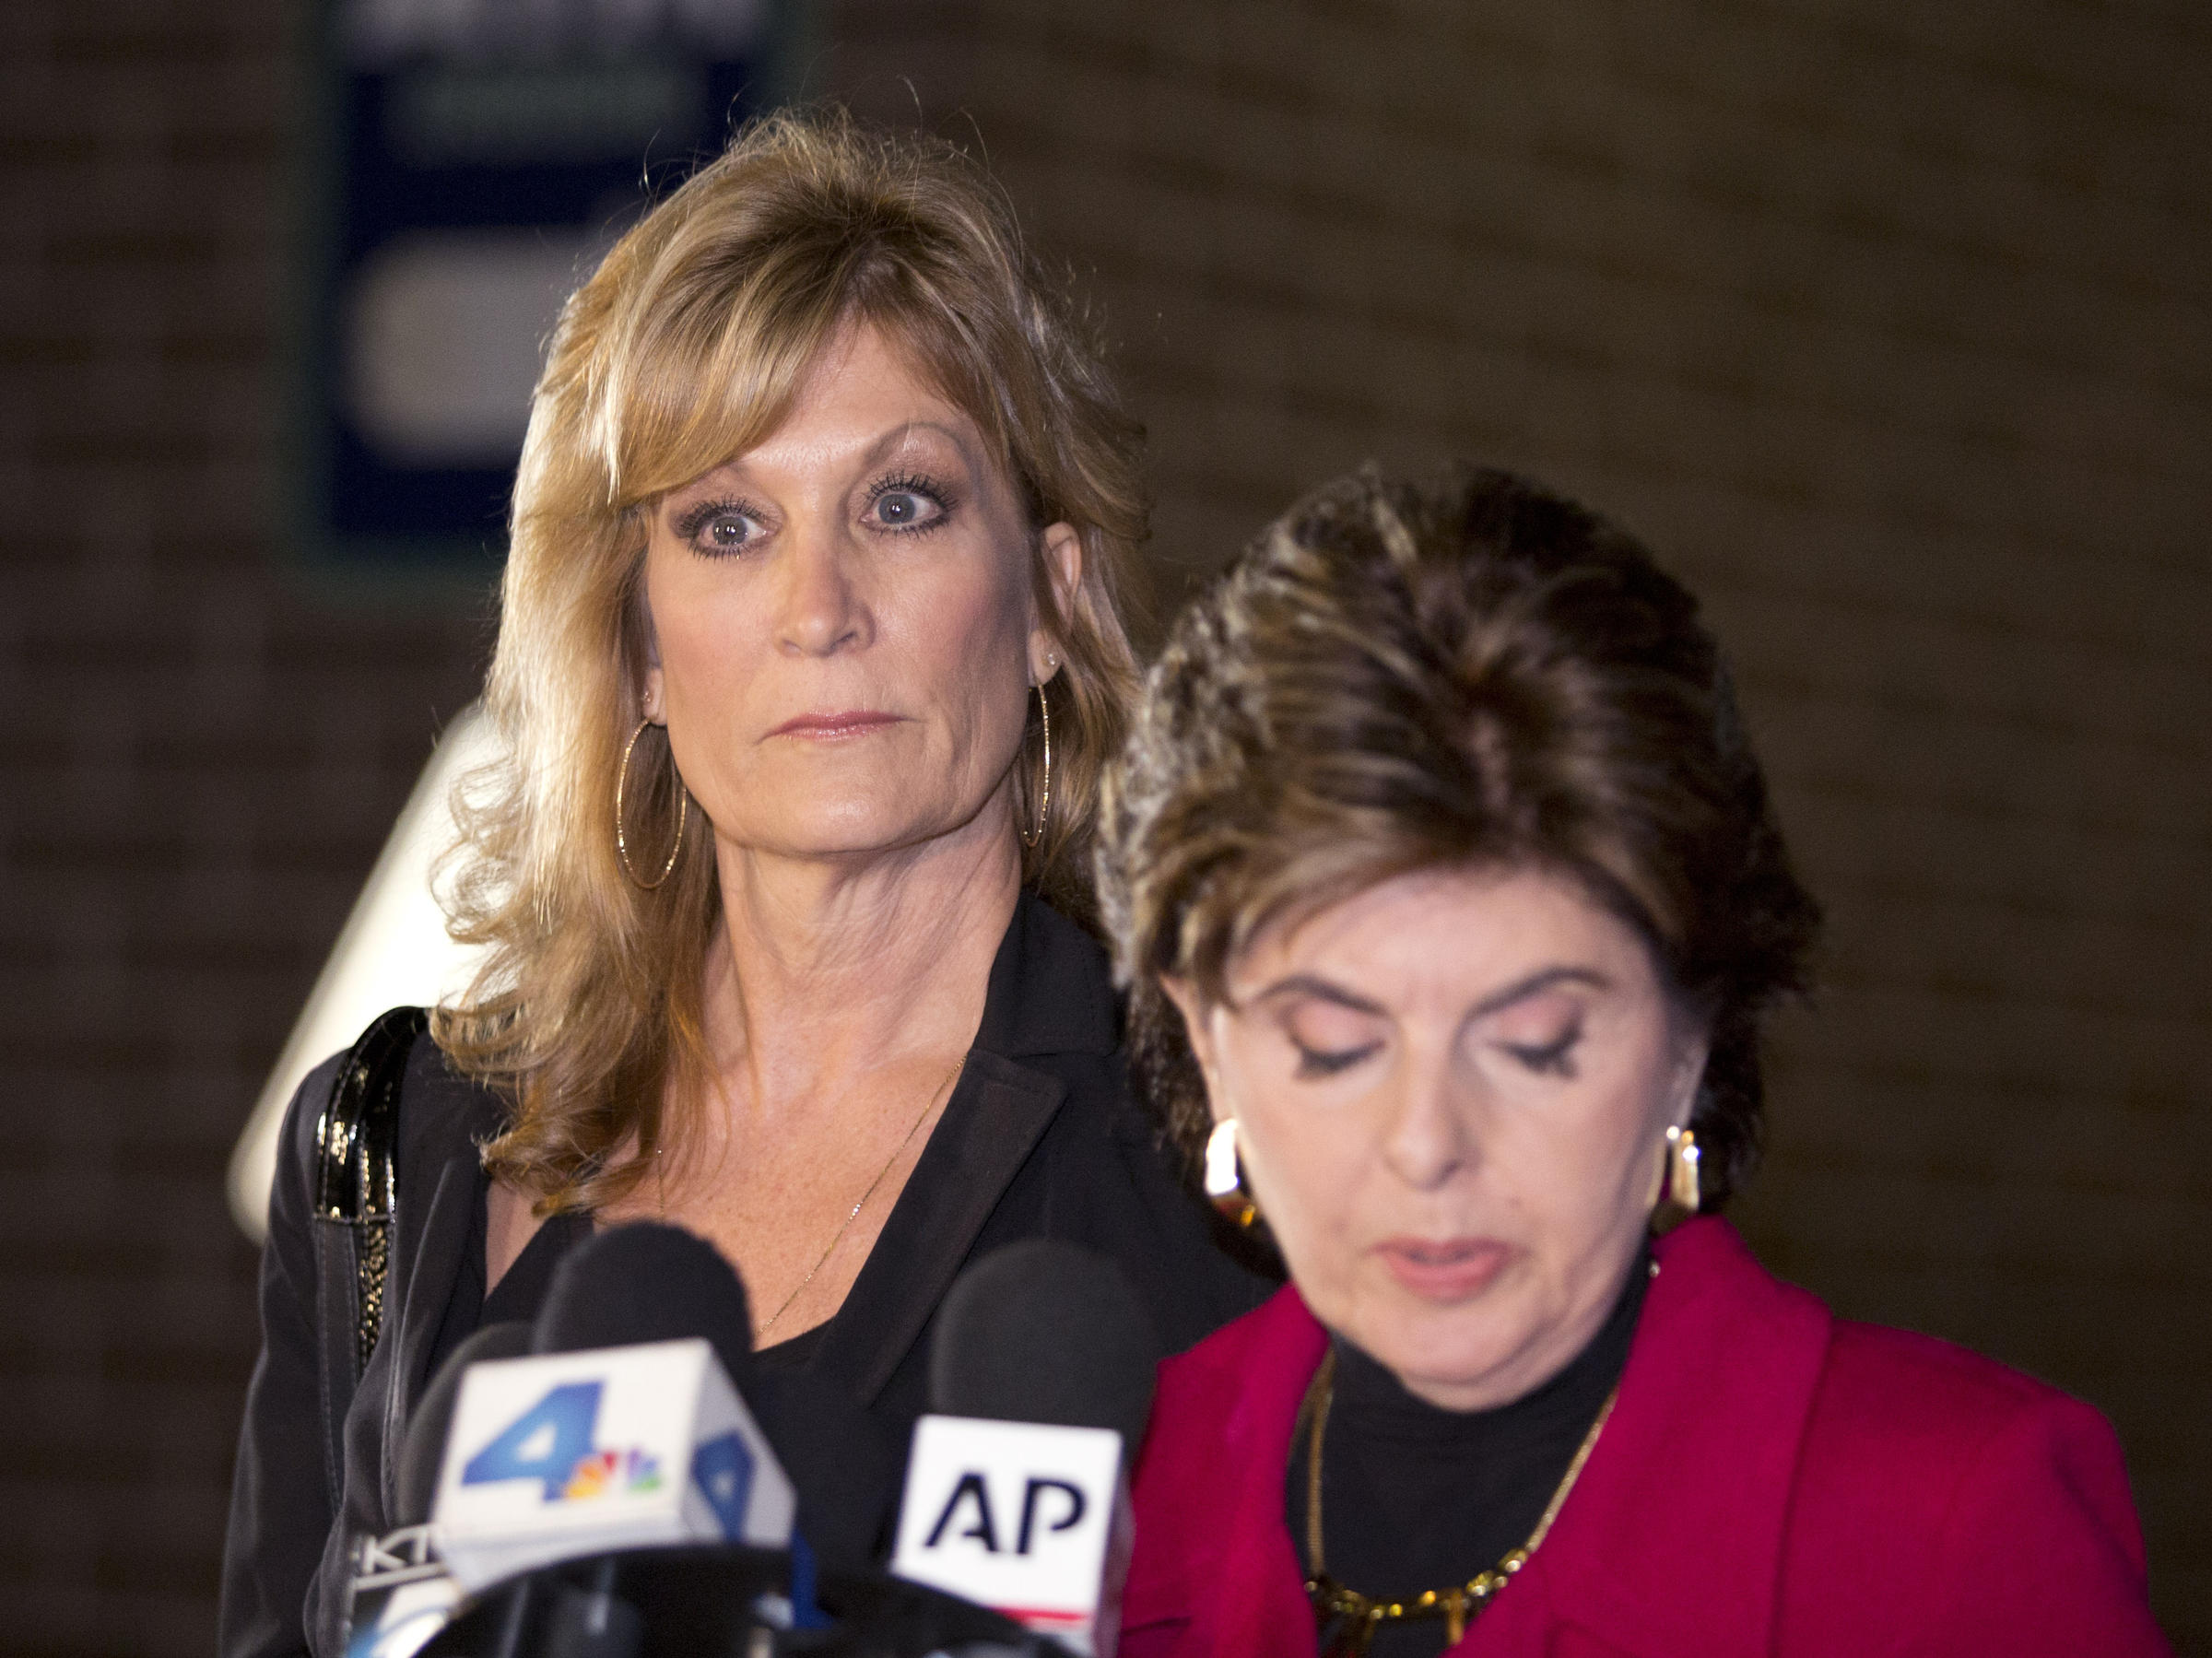 LAPD Says It Will Investigate Abuse Claim Against Cosby | WUWM